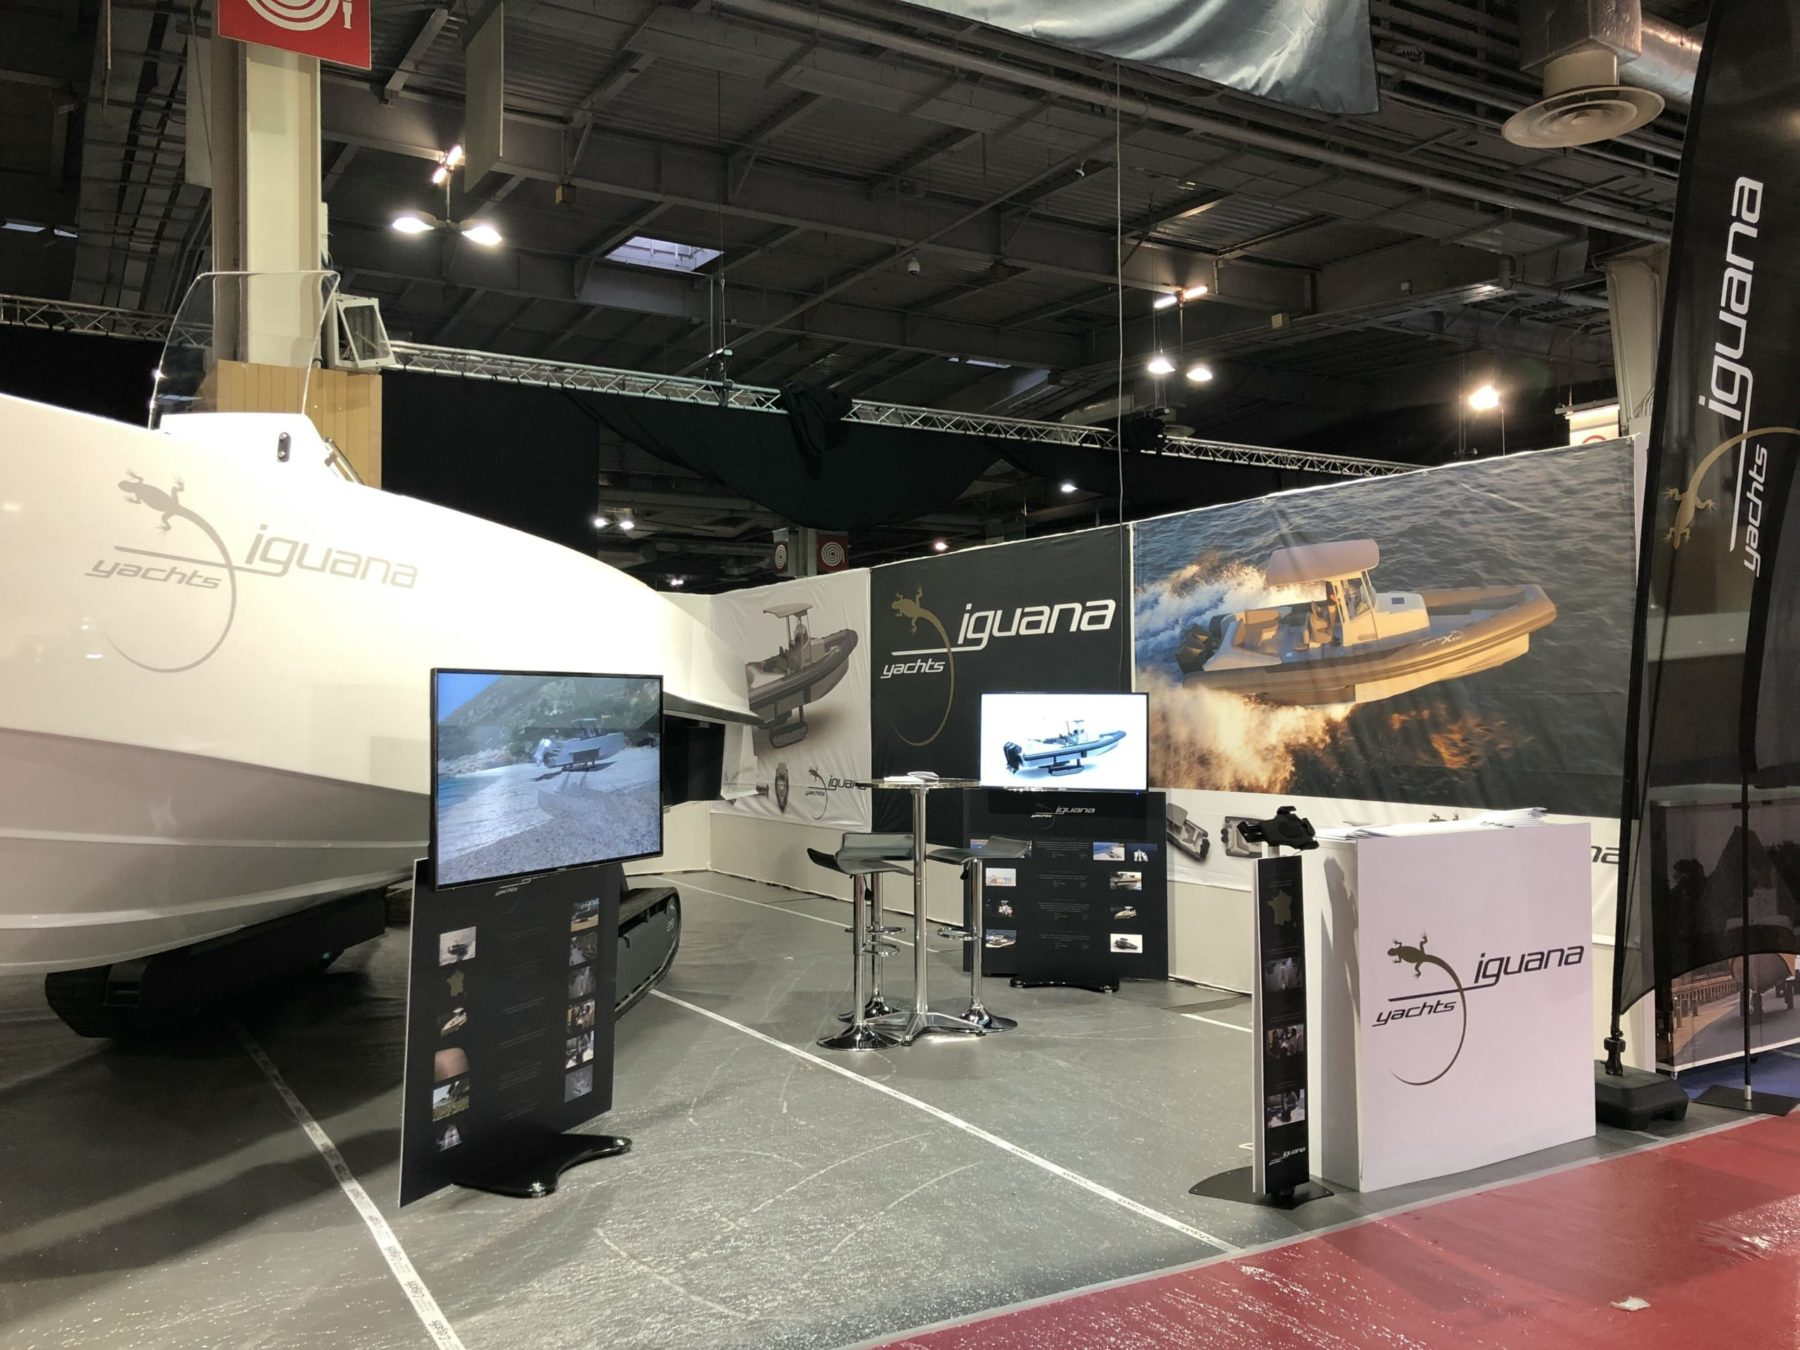 iguana yachts stand in paris